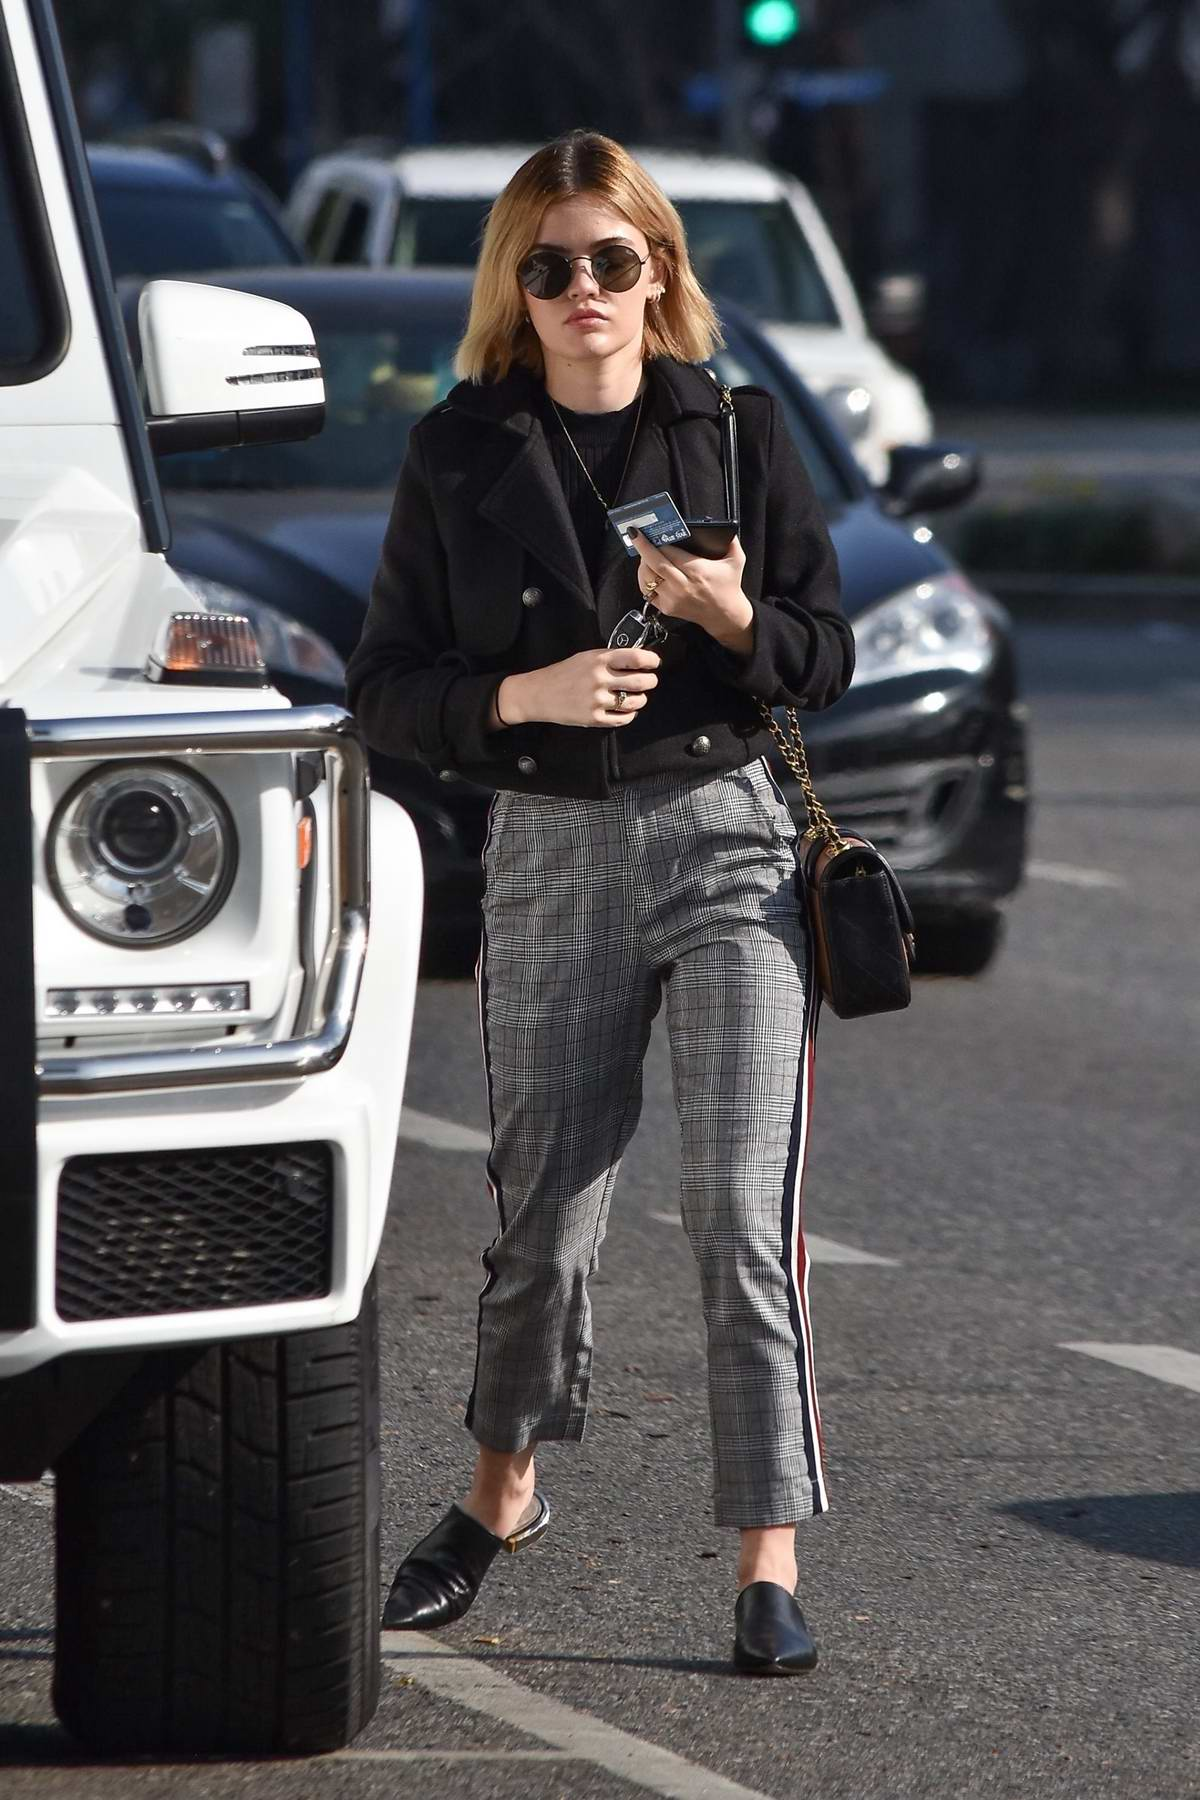 Lucy Hale looks cute in a black jacket and grey plaid trousers as she makes a coffee run to Starbucks in Studio City, Los Angeles